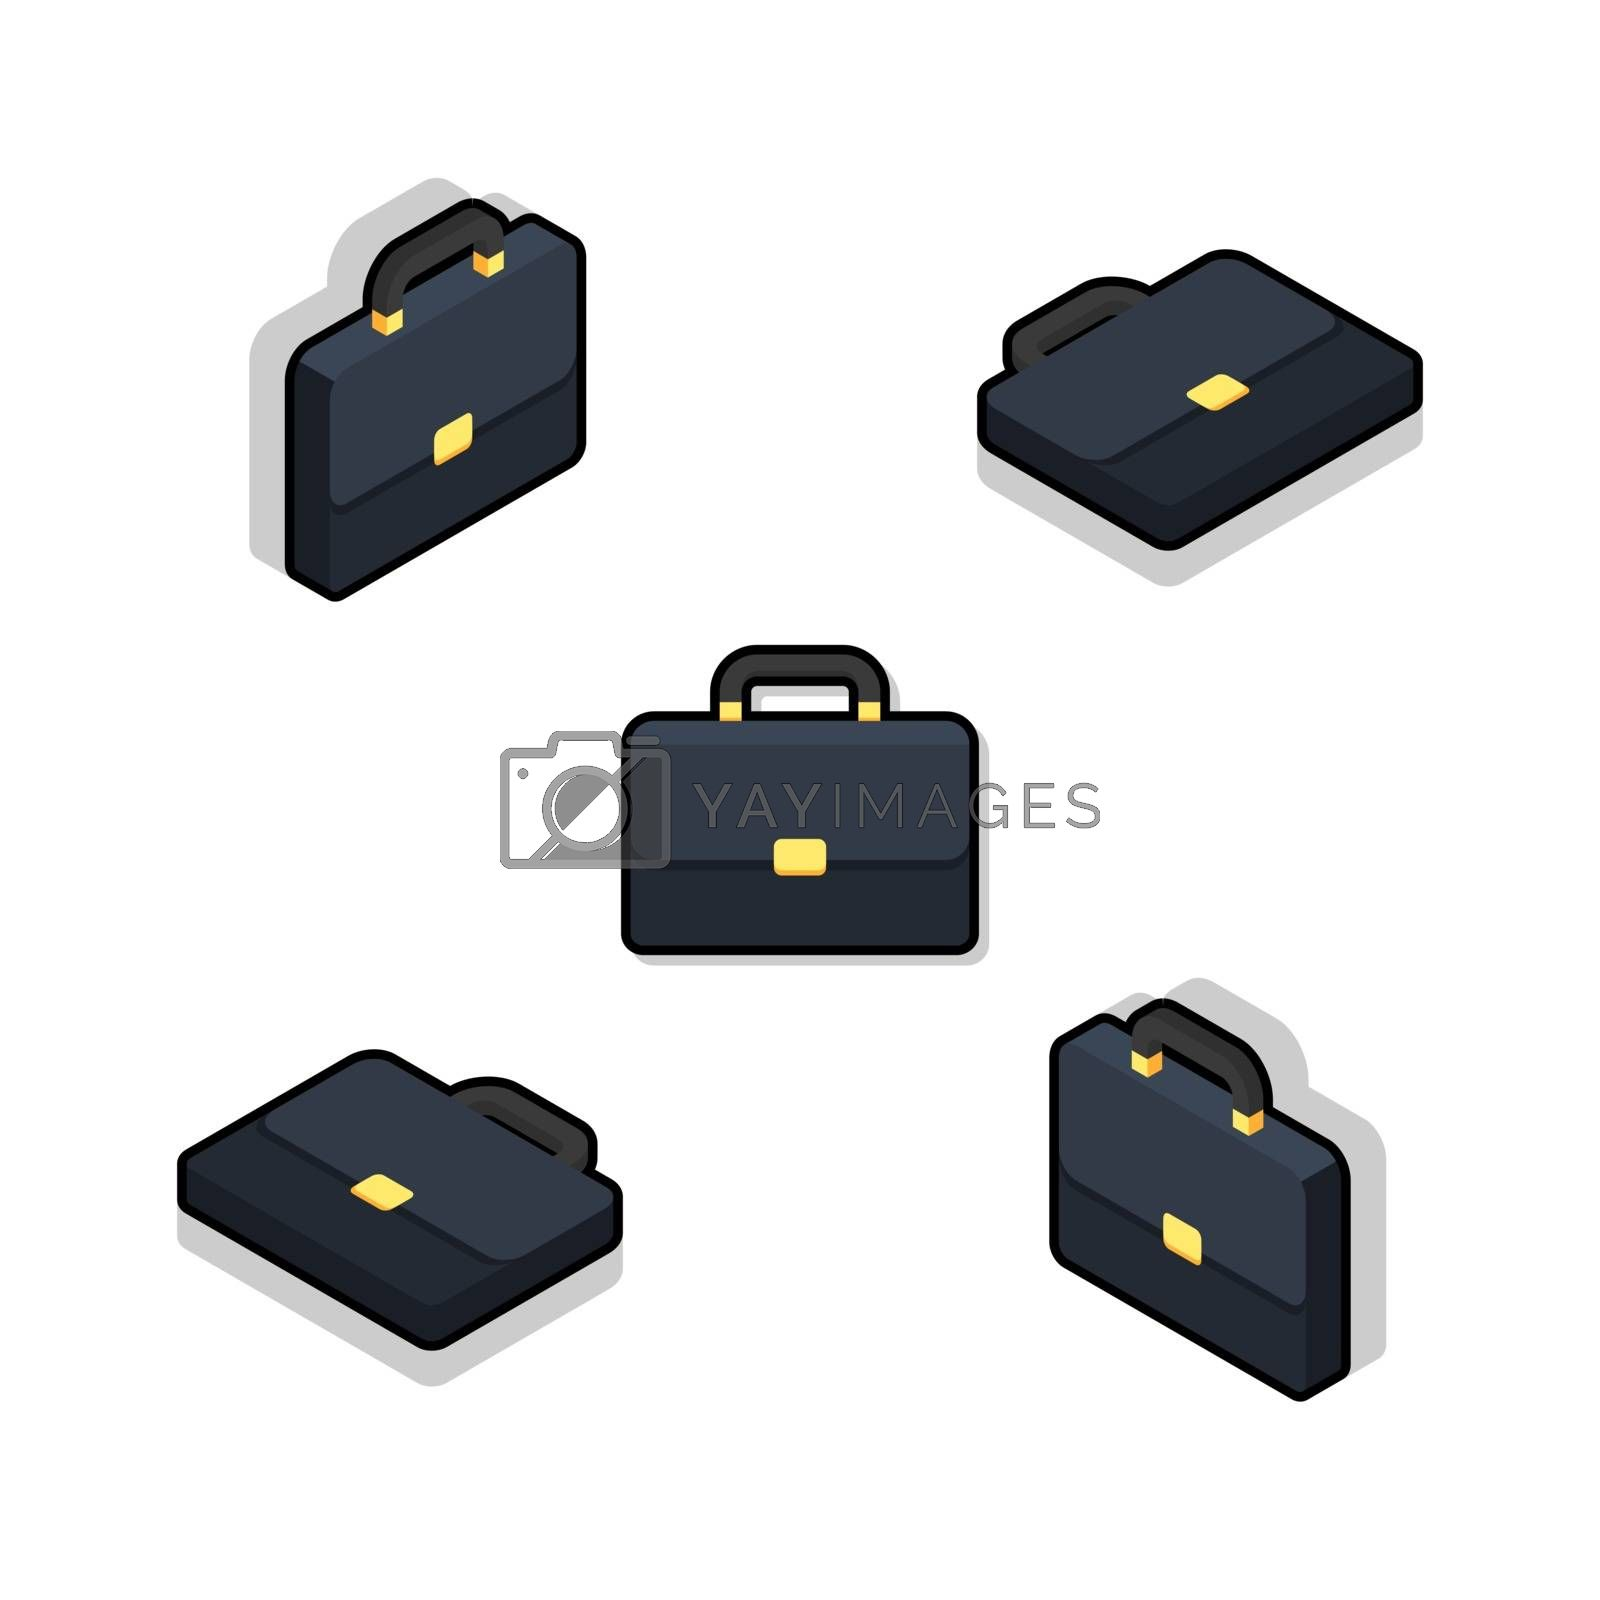 Briefcase Isometric & Flat Black Stroke and Shadow icon vector. Flat style vector illustration.